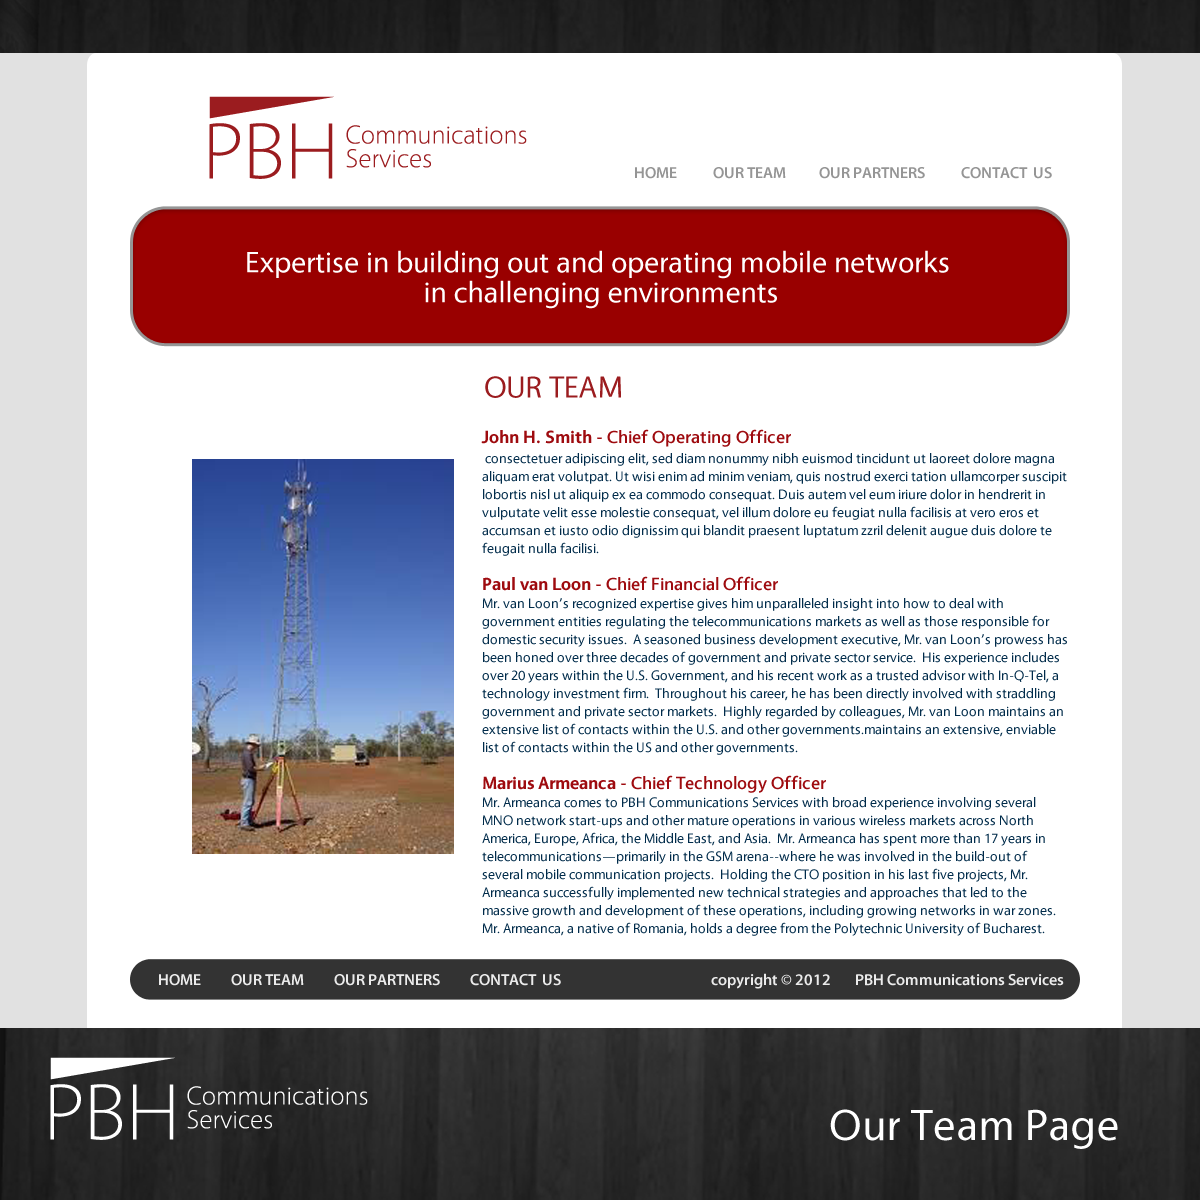 Web Page Design by storm - Entry No. 69 in the Web Page Design Contest New Web Page Design for PBH Communications Services.